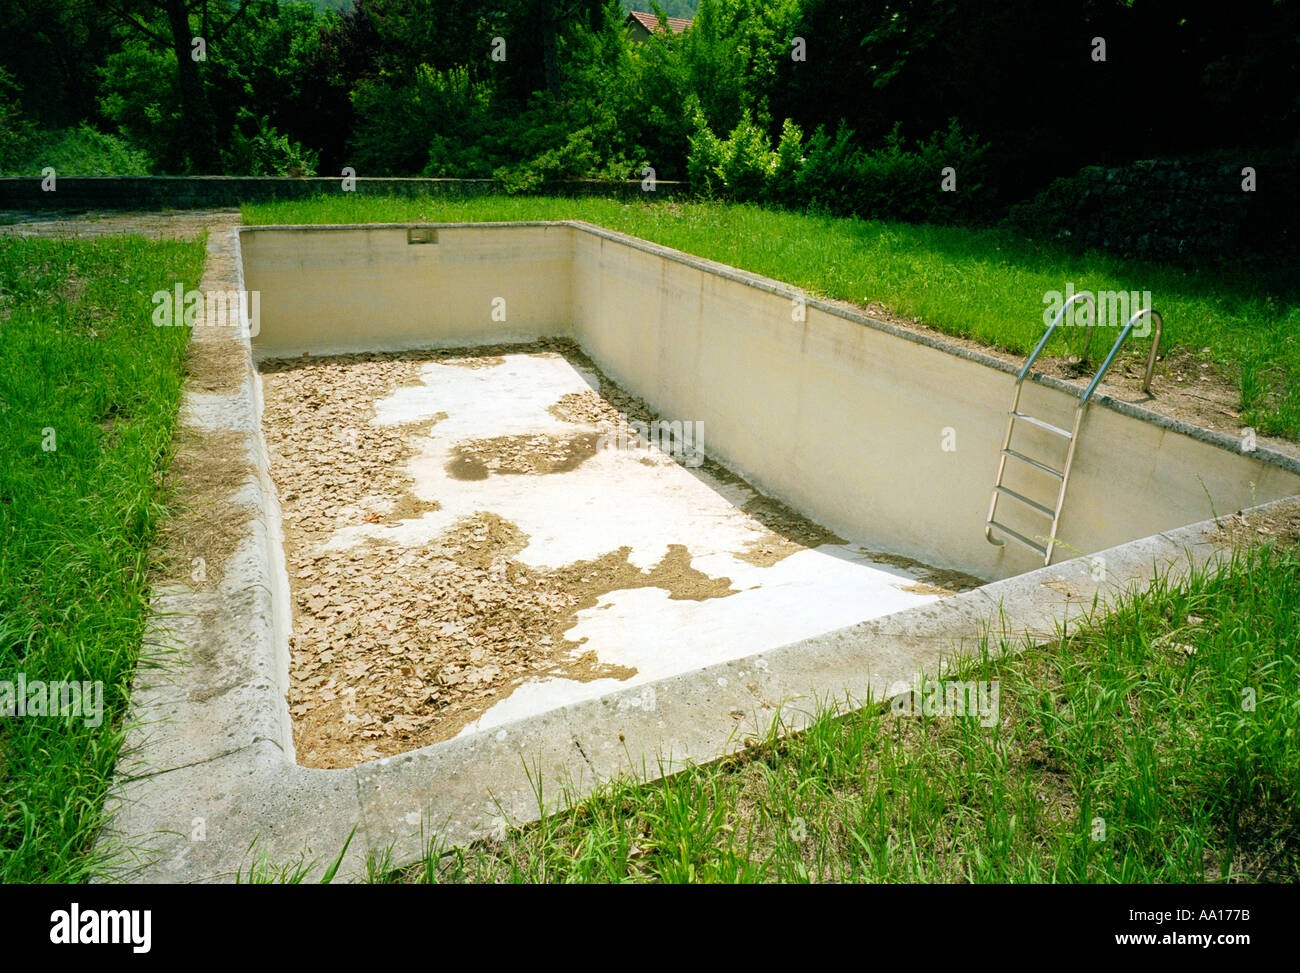 Empty Swimming Pool Neglected Deserted Abandoned Empty High Resolution Stock Photography And Images Alamy